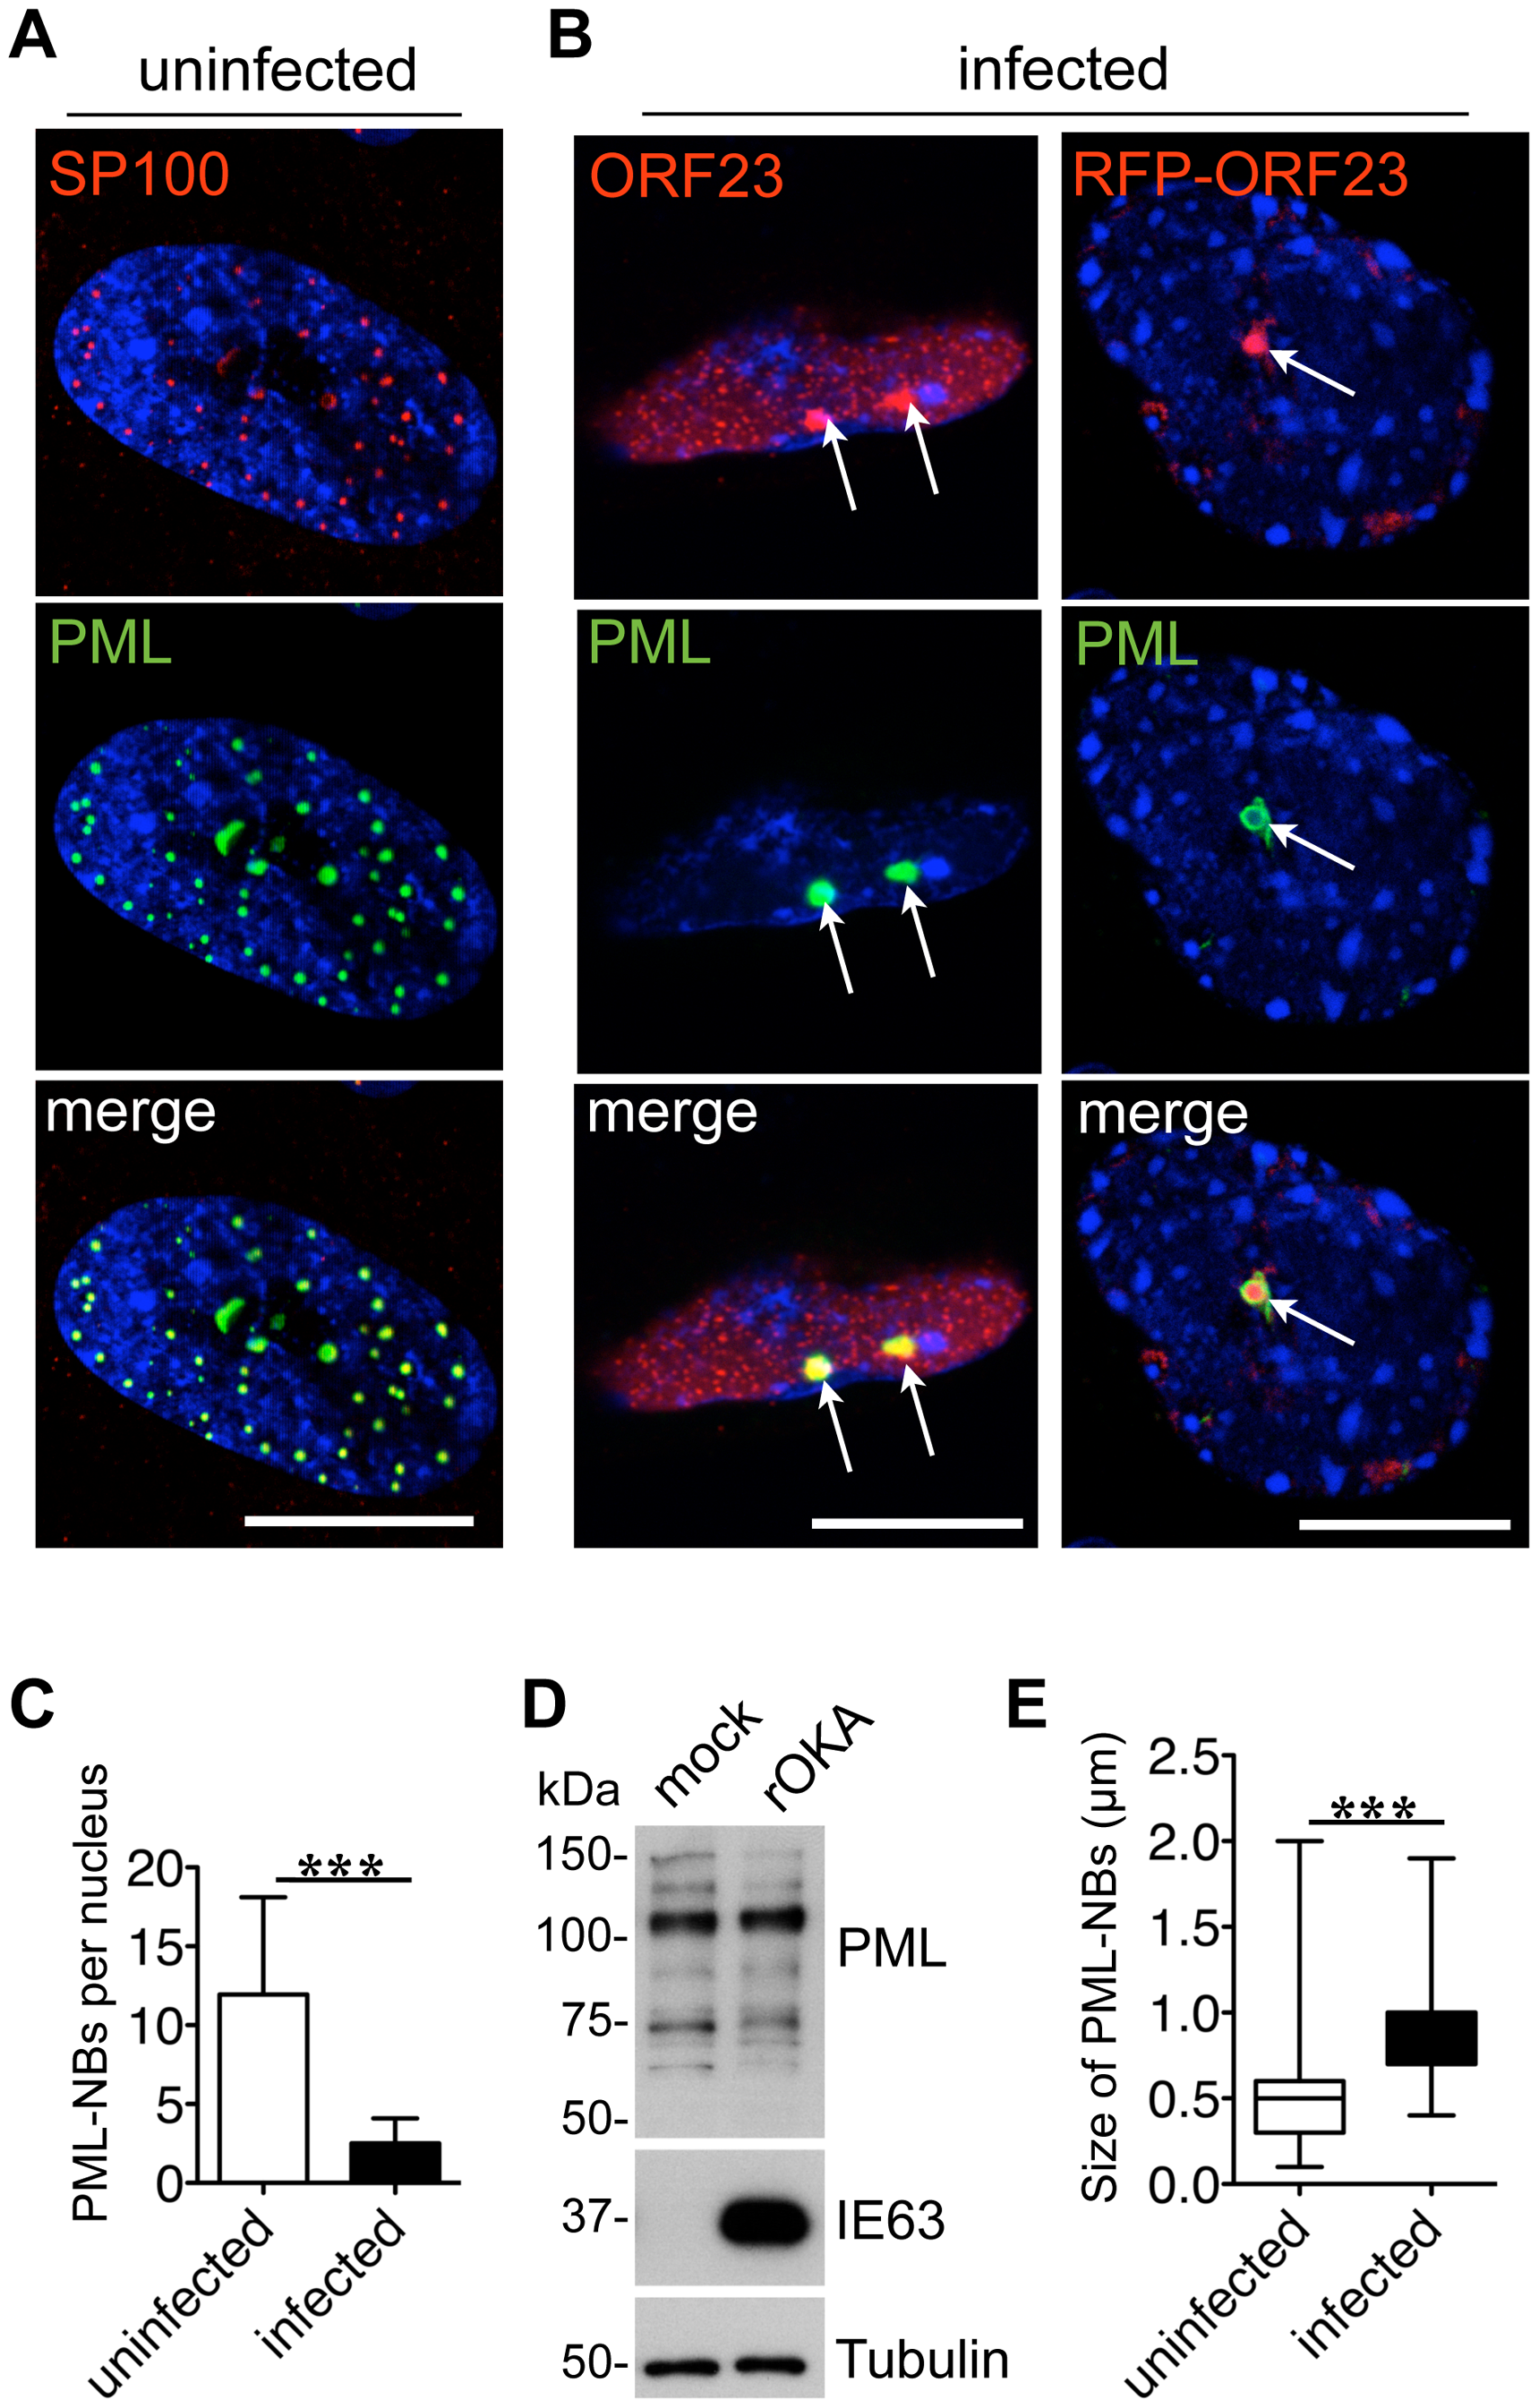 Endogenous PML-NBs colocalize with ORF23 capsid protein in VZV infected cells.